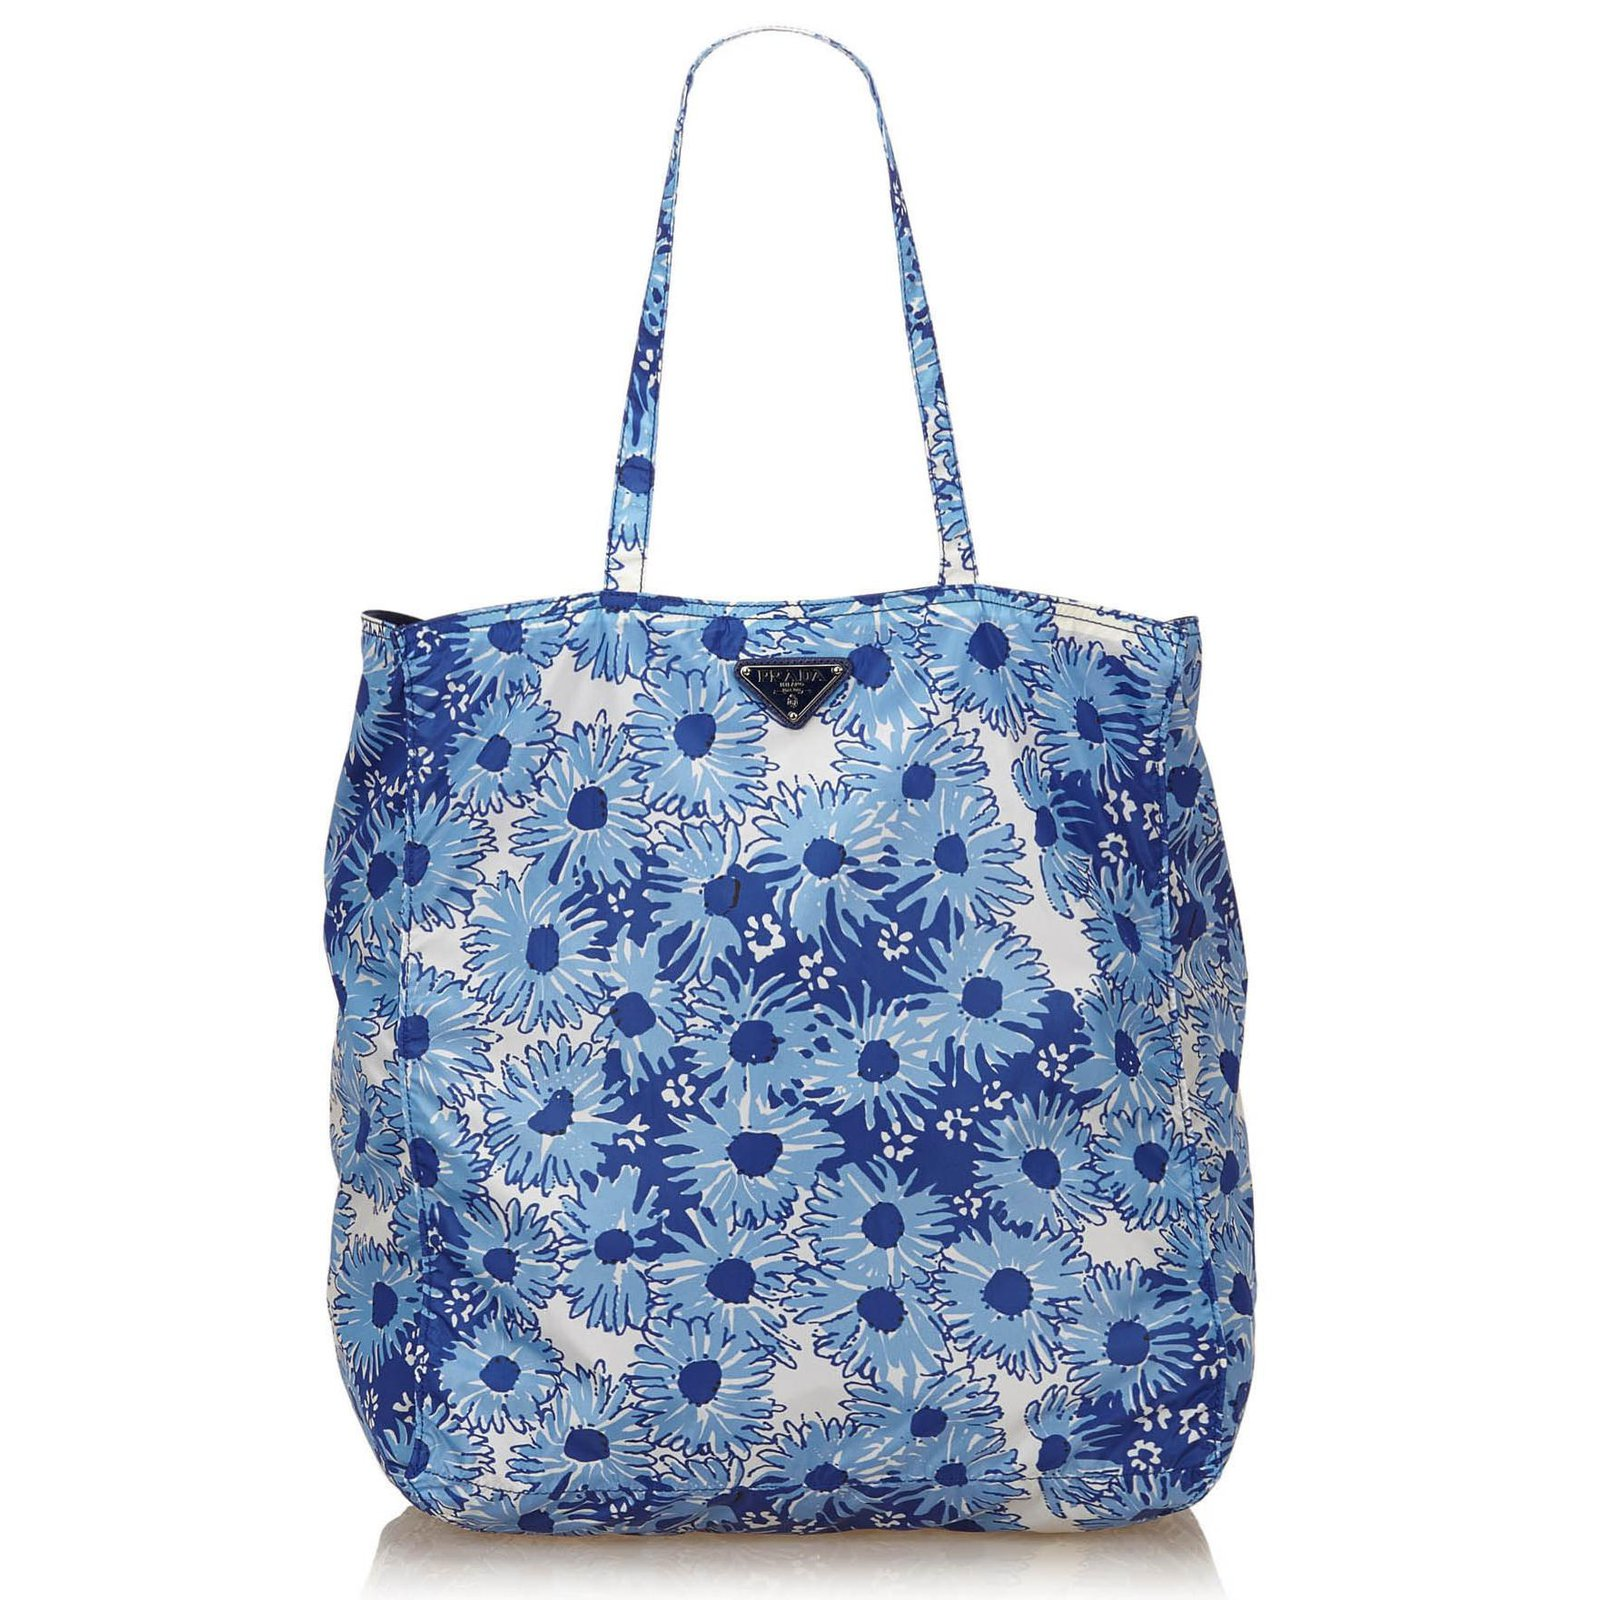 7be067268fe6 ... best prada floral nylon tote bag totes nyloncloth whitebluelight blue  ref 10903 dbe1a